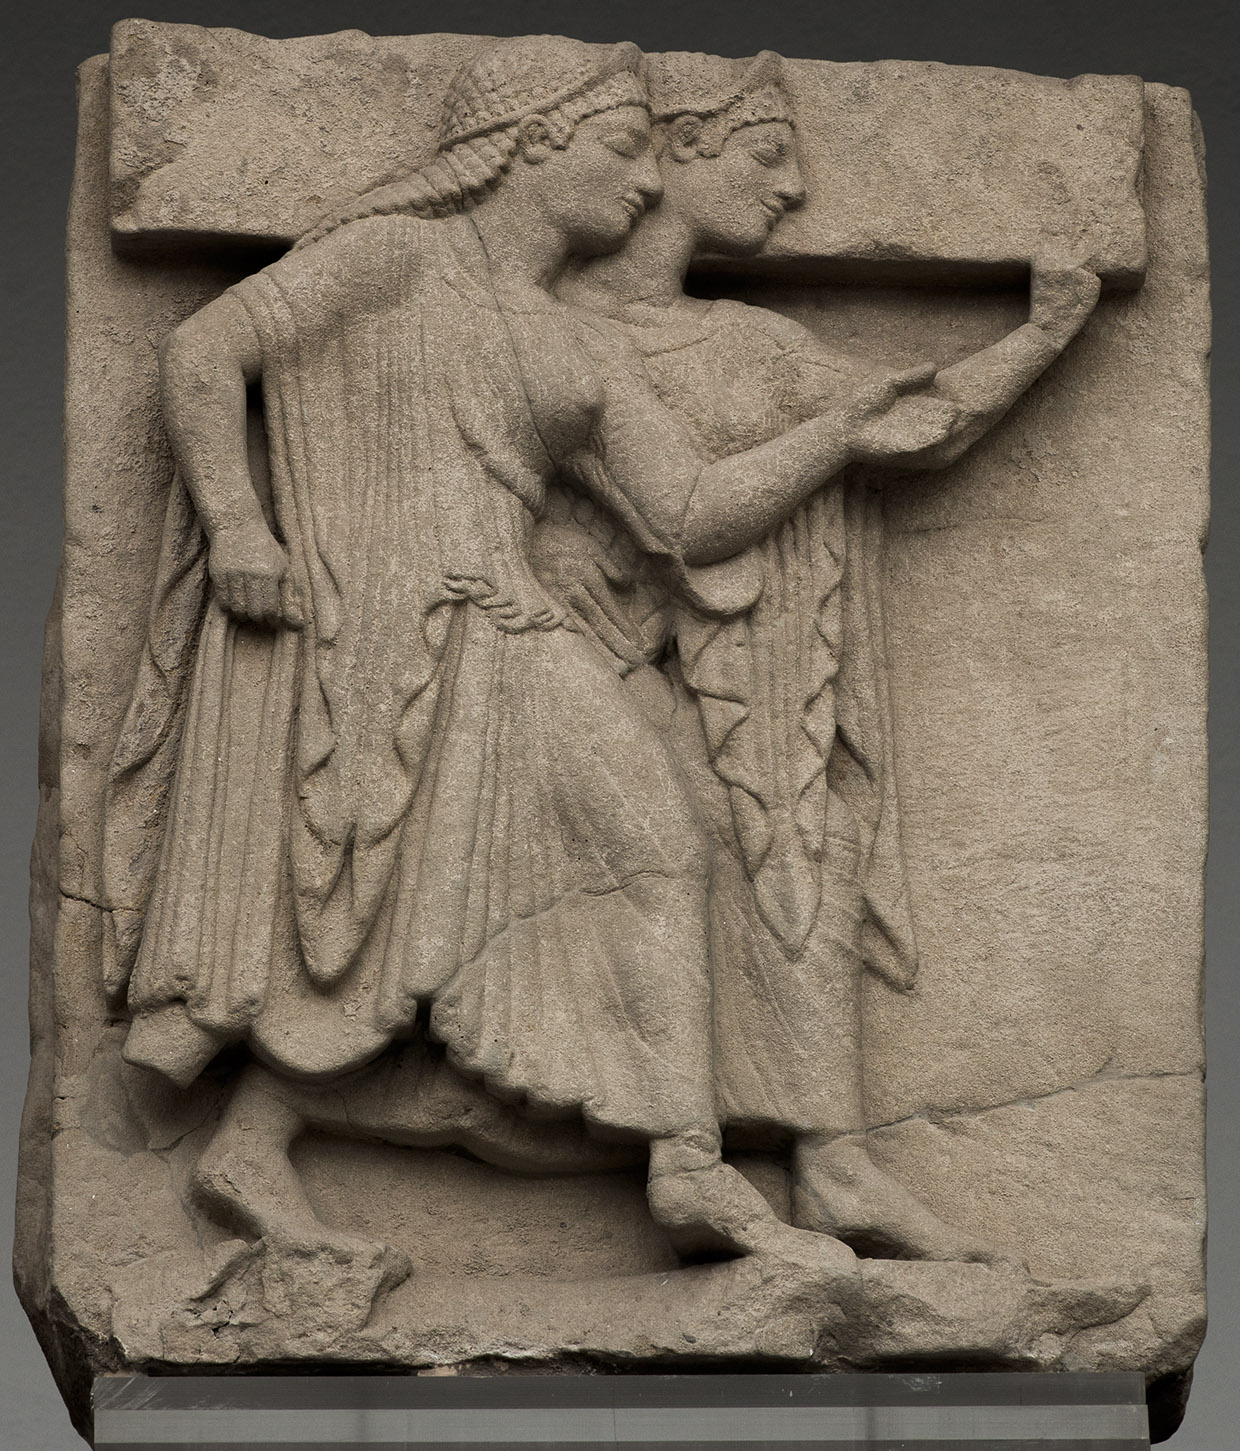 So-called Nereids. Sandstone. Metope from the temple of Hera at the mouth of the river Sele. Mid-6th century BCE. Paestum, National Archaeological Museum